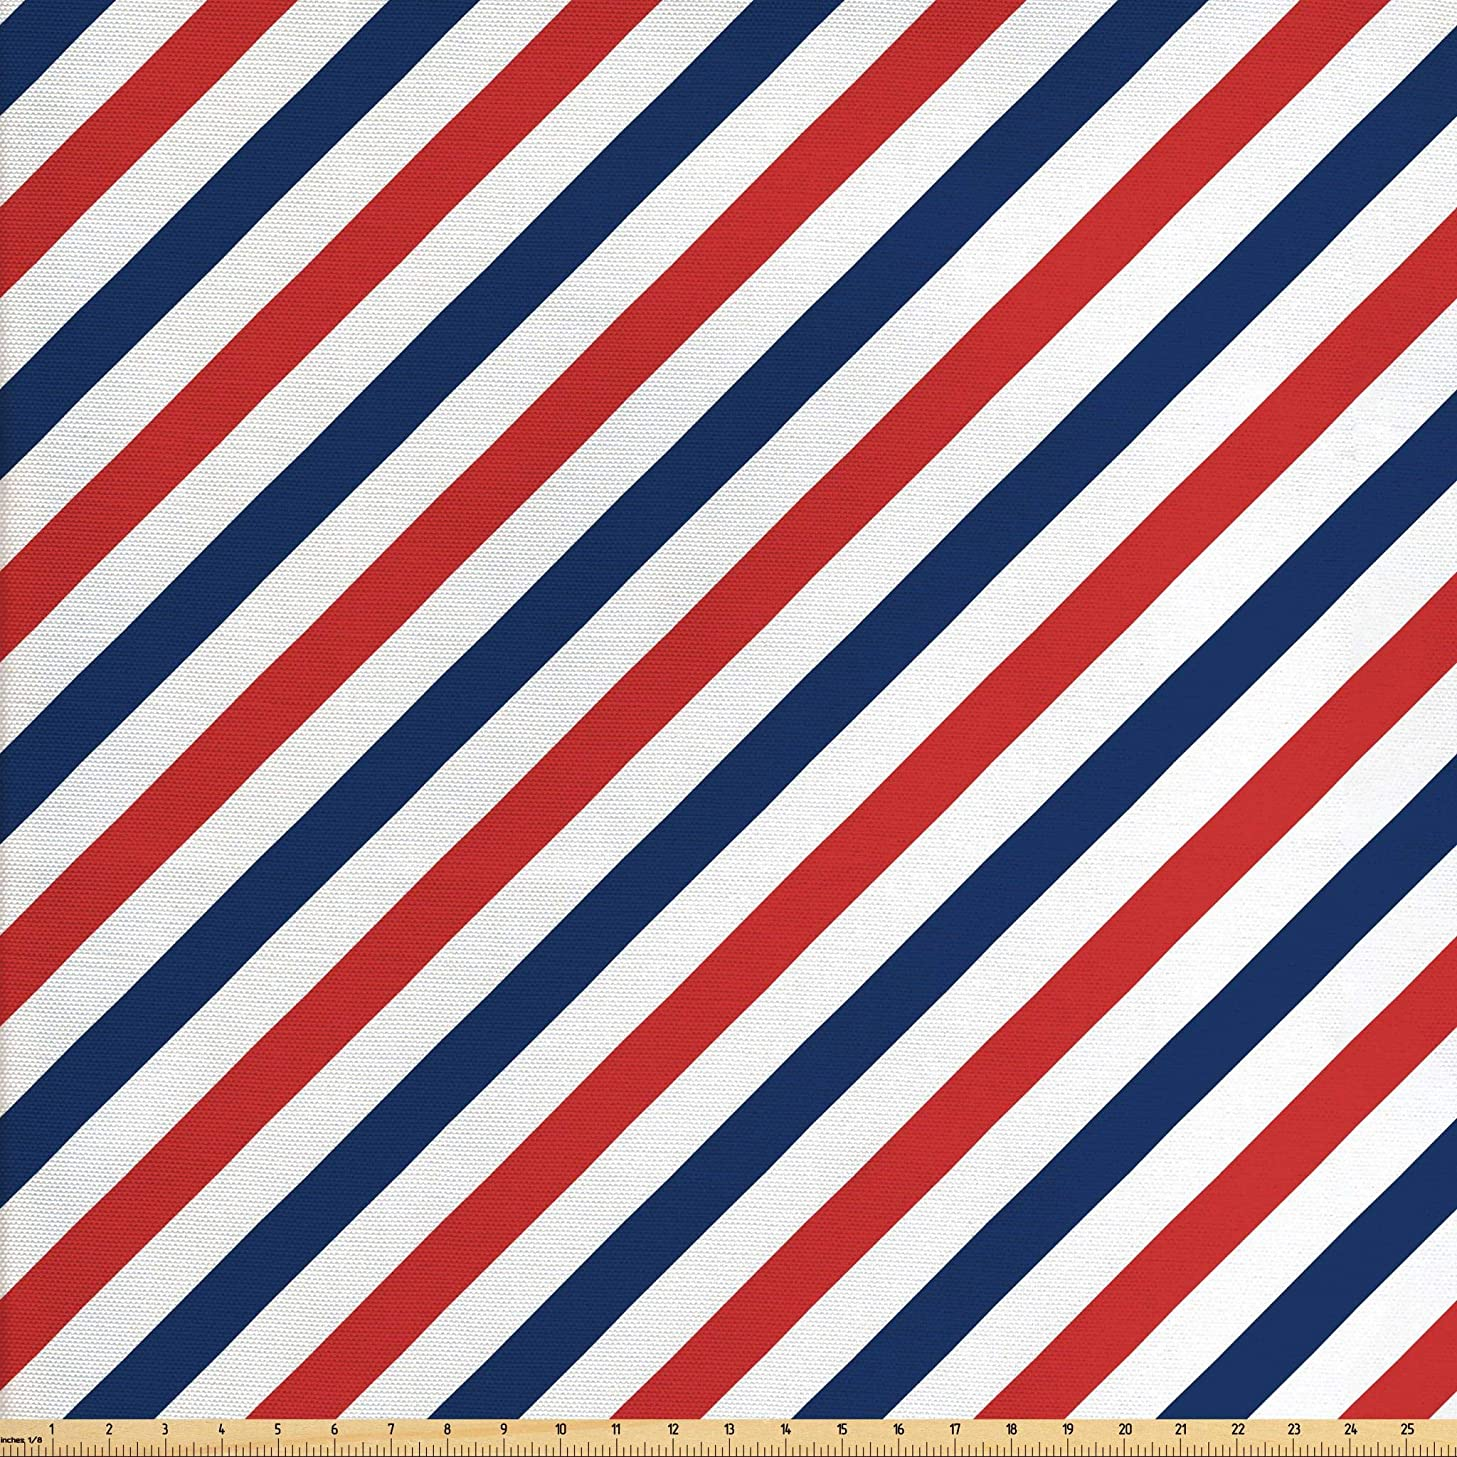 Ambesonne Harbour Stripe Fabric by The Yard, Vintage Barber Pole Helix of Colored Stripes Medieval Contrast Design, Decorative Fabric for Upholstery and Home Accents, 2 Yards, Blue Red White